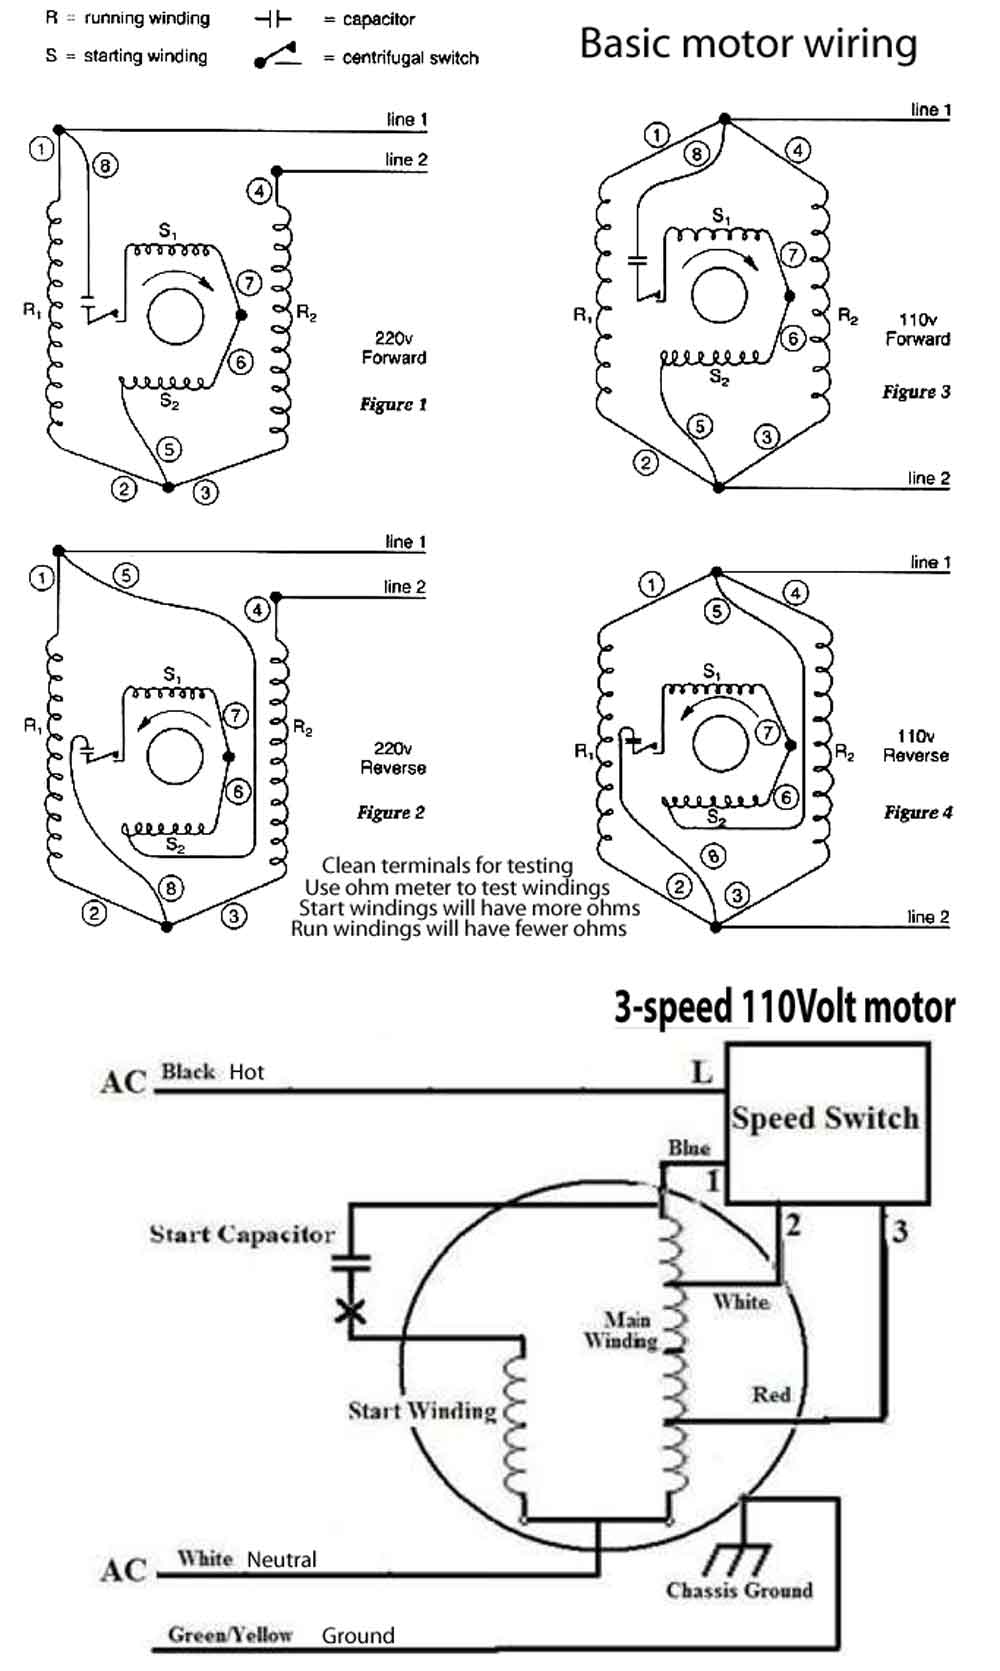 Motor wiring 500 how to wire 3 speed fan switch ct test switch wiring diagram at n-0.co